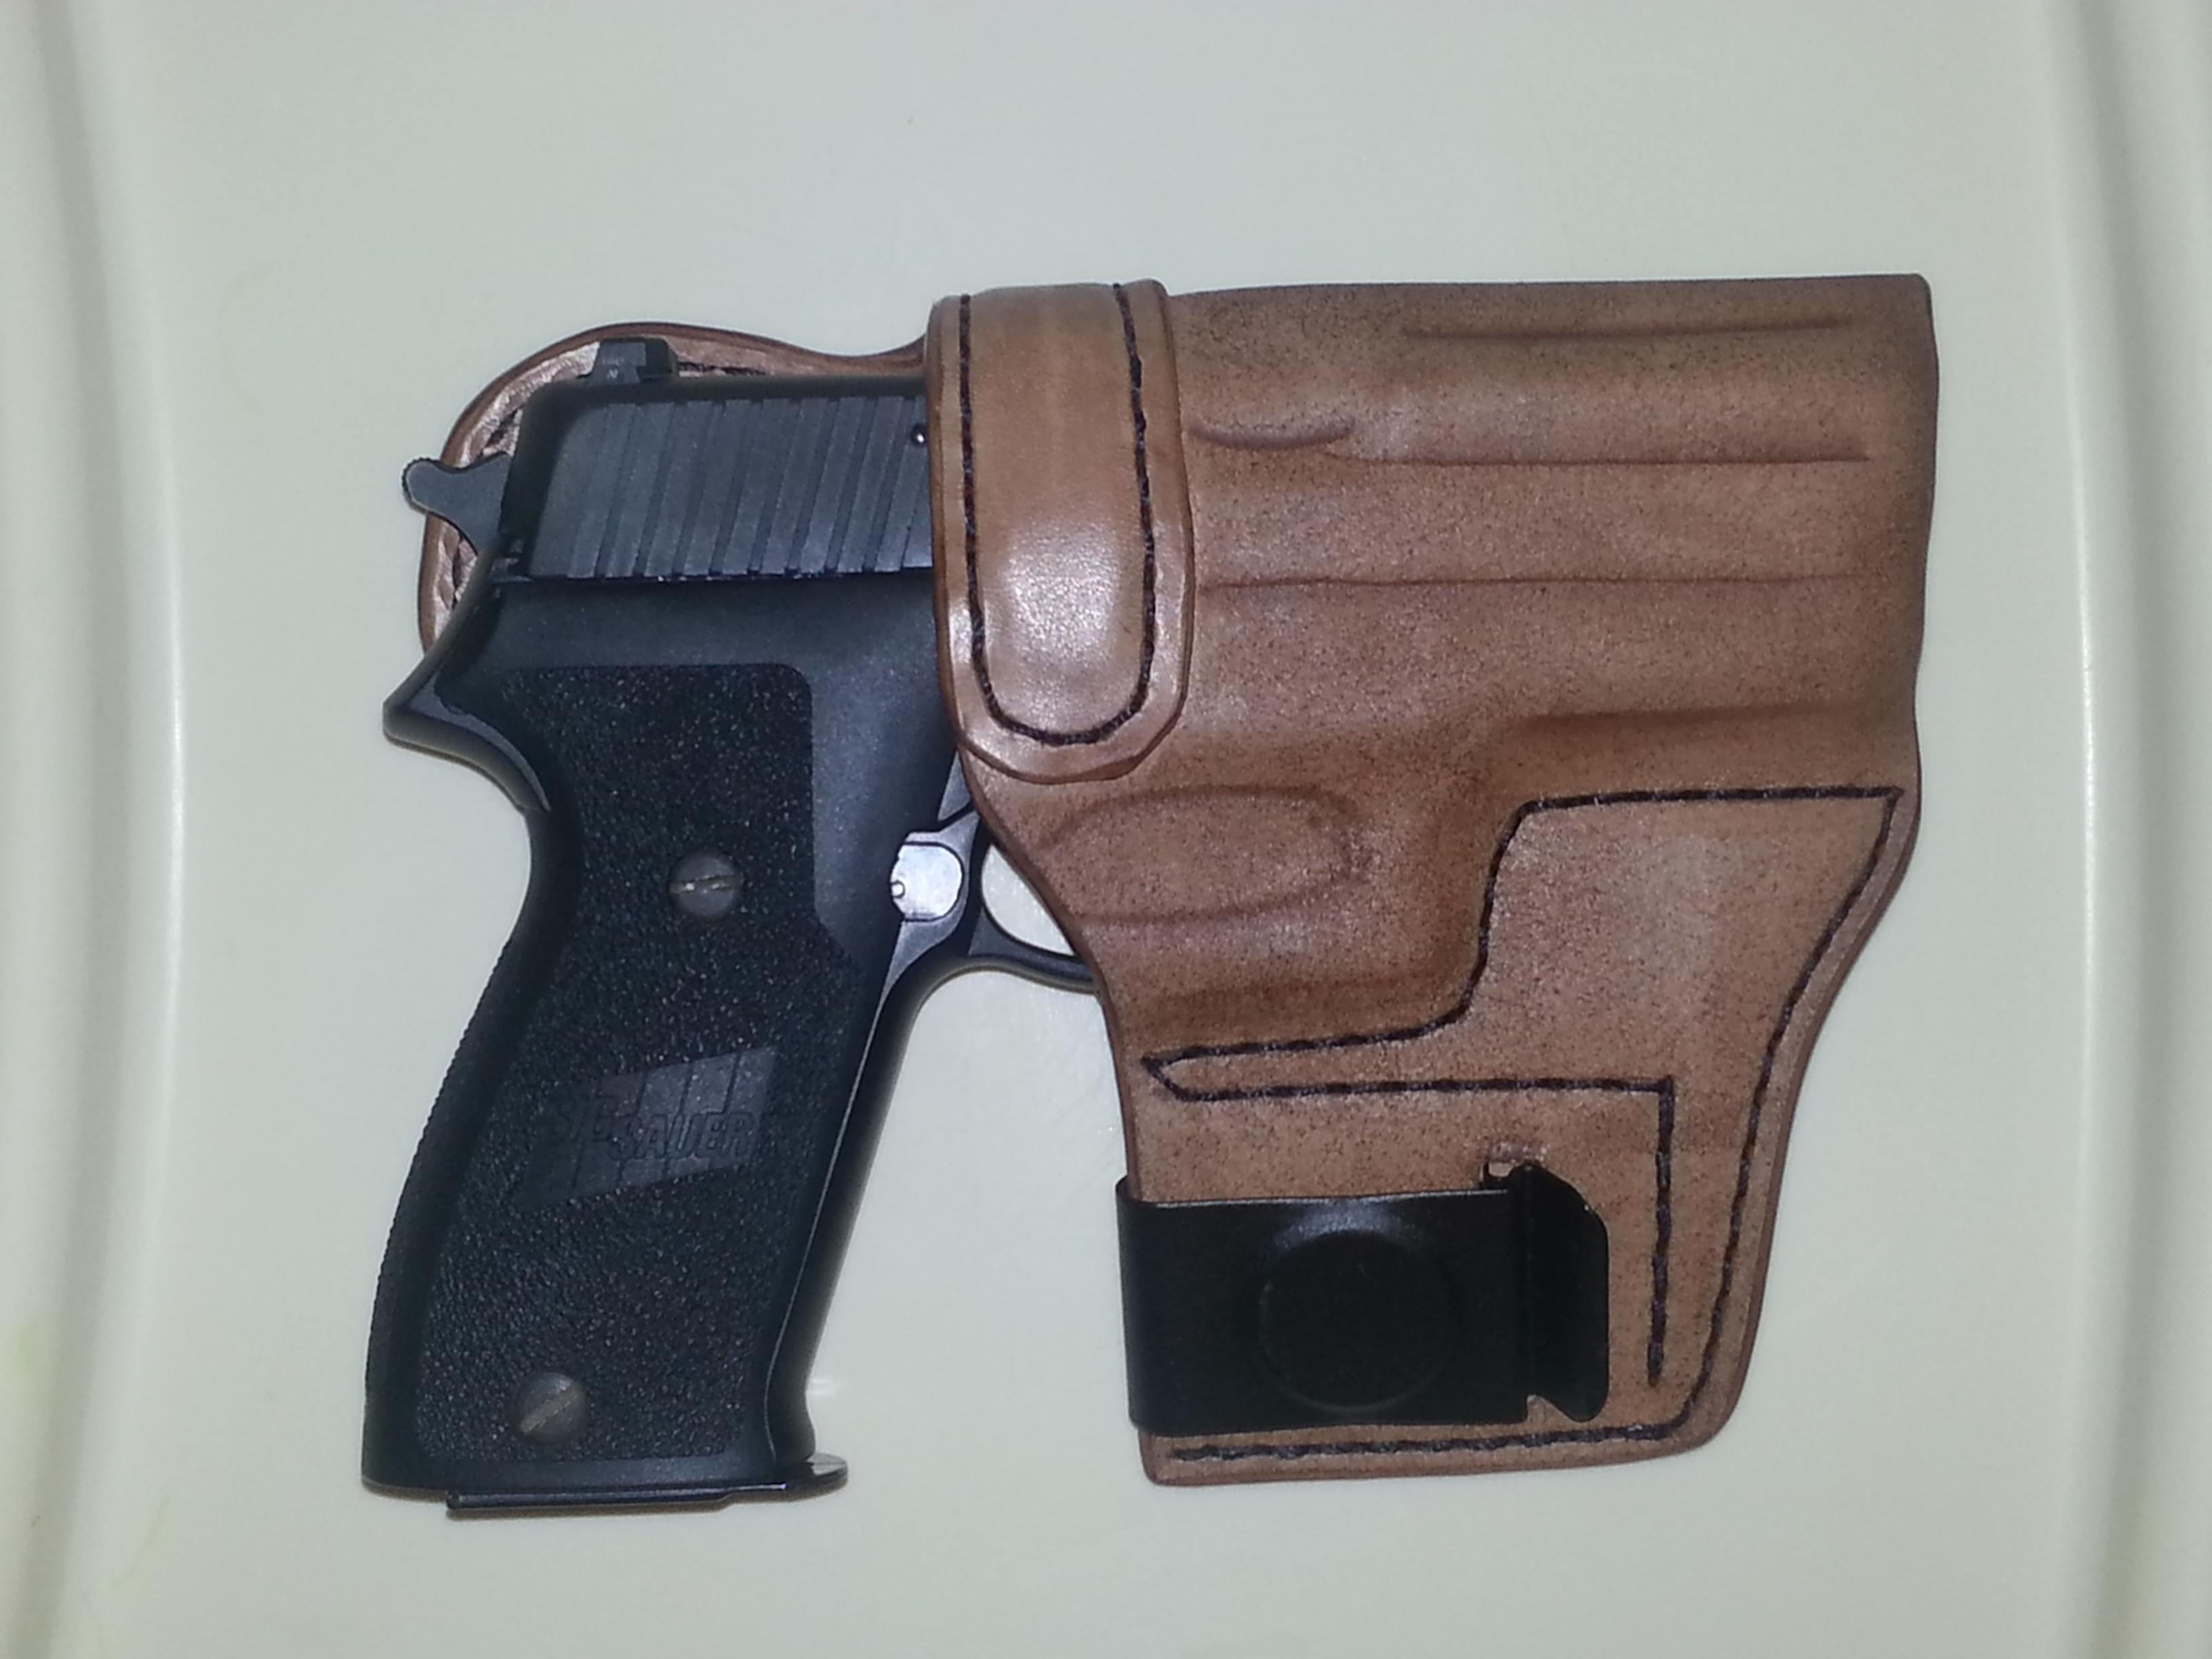 Custom appendix carry holster from R Grizzle Leather-20121030_184509.jpg